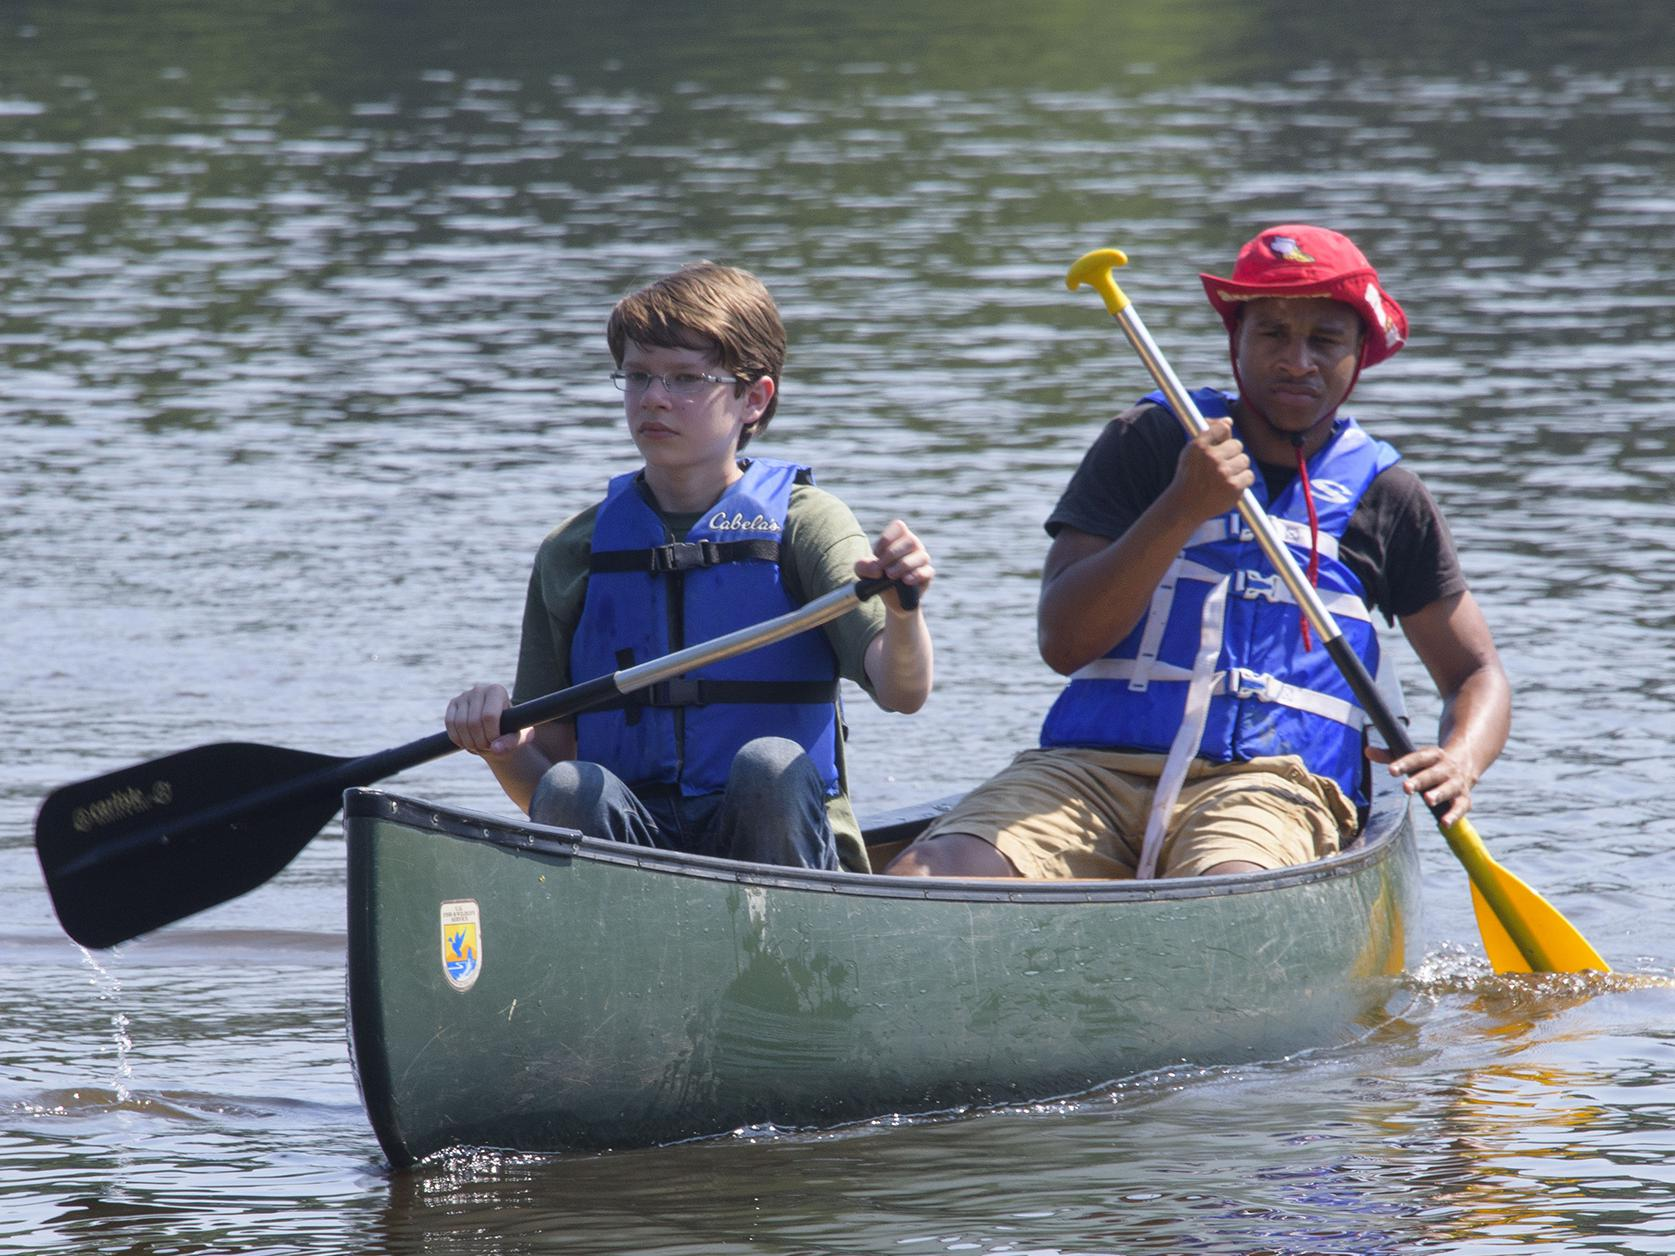 Young campers paddle across a lake during a Mississippi State University conservation camp in 2015. (Photo by MSU Extension Service/Kevin Hudson)